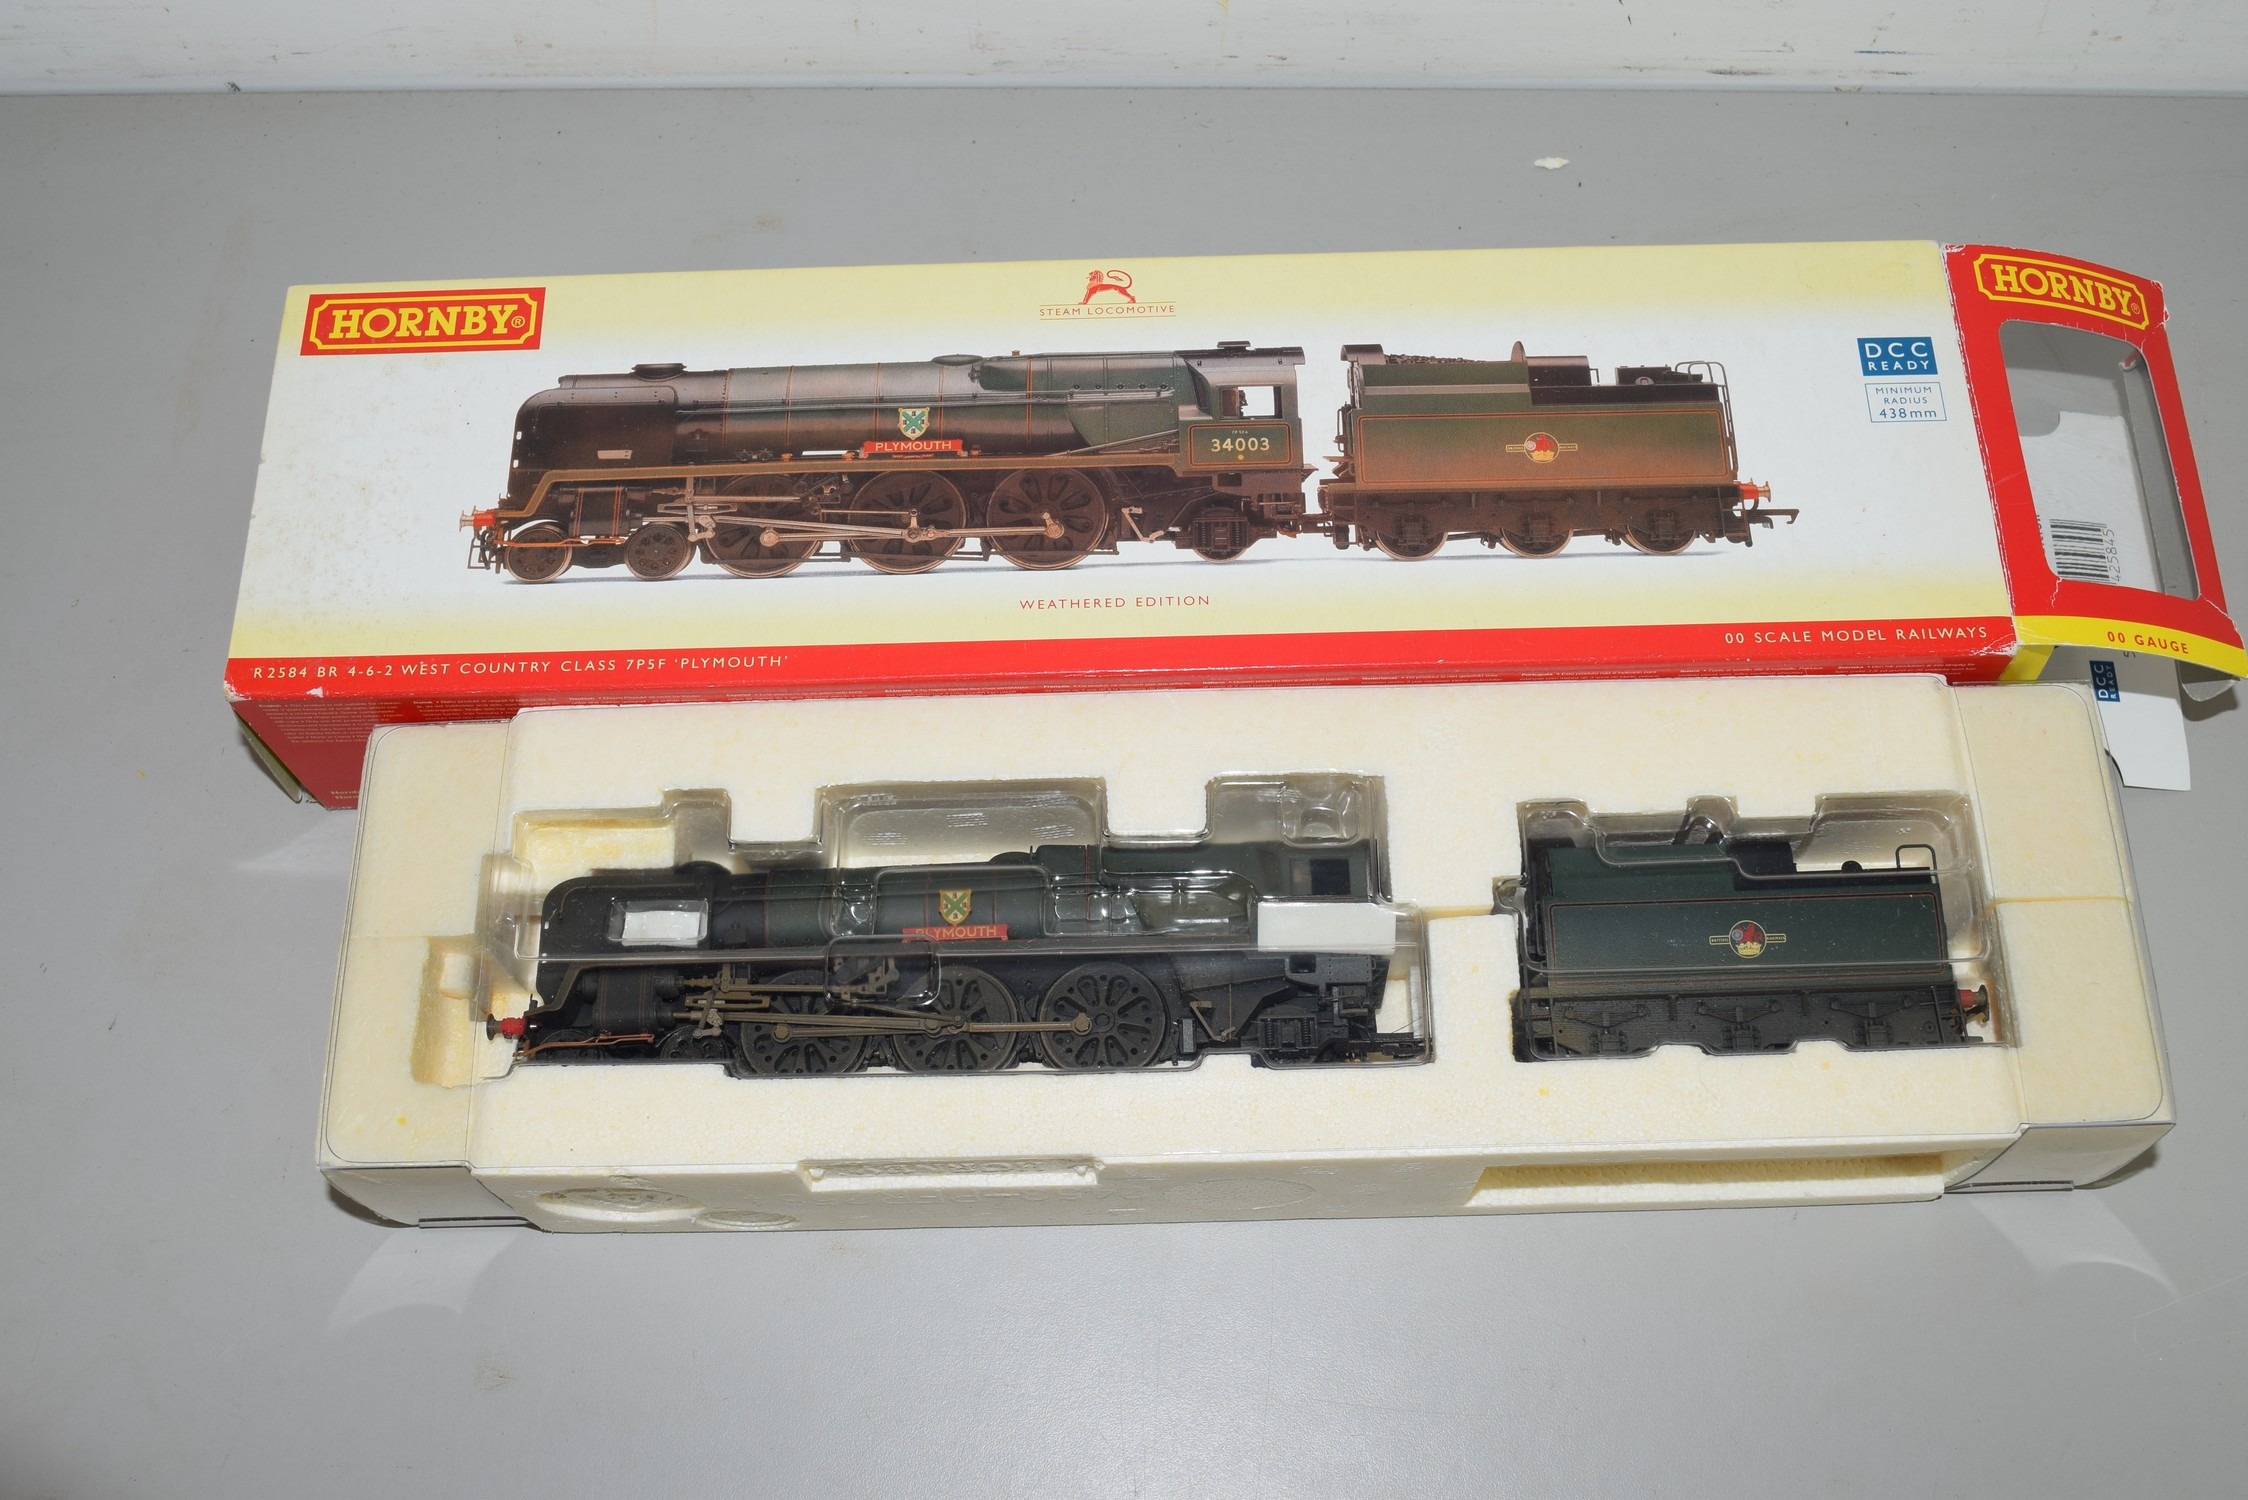 """Boxed Hornby 00 gauge R2584 BR 4-6-2 rebuilt West Country class """"Plymouth"""" locomotive, weathered"""